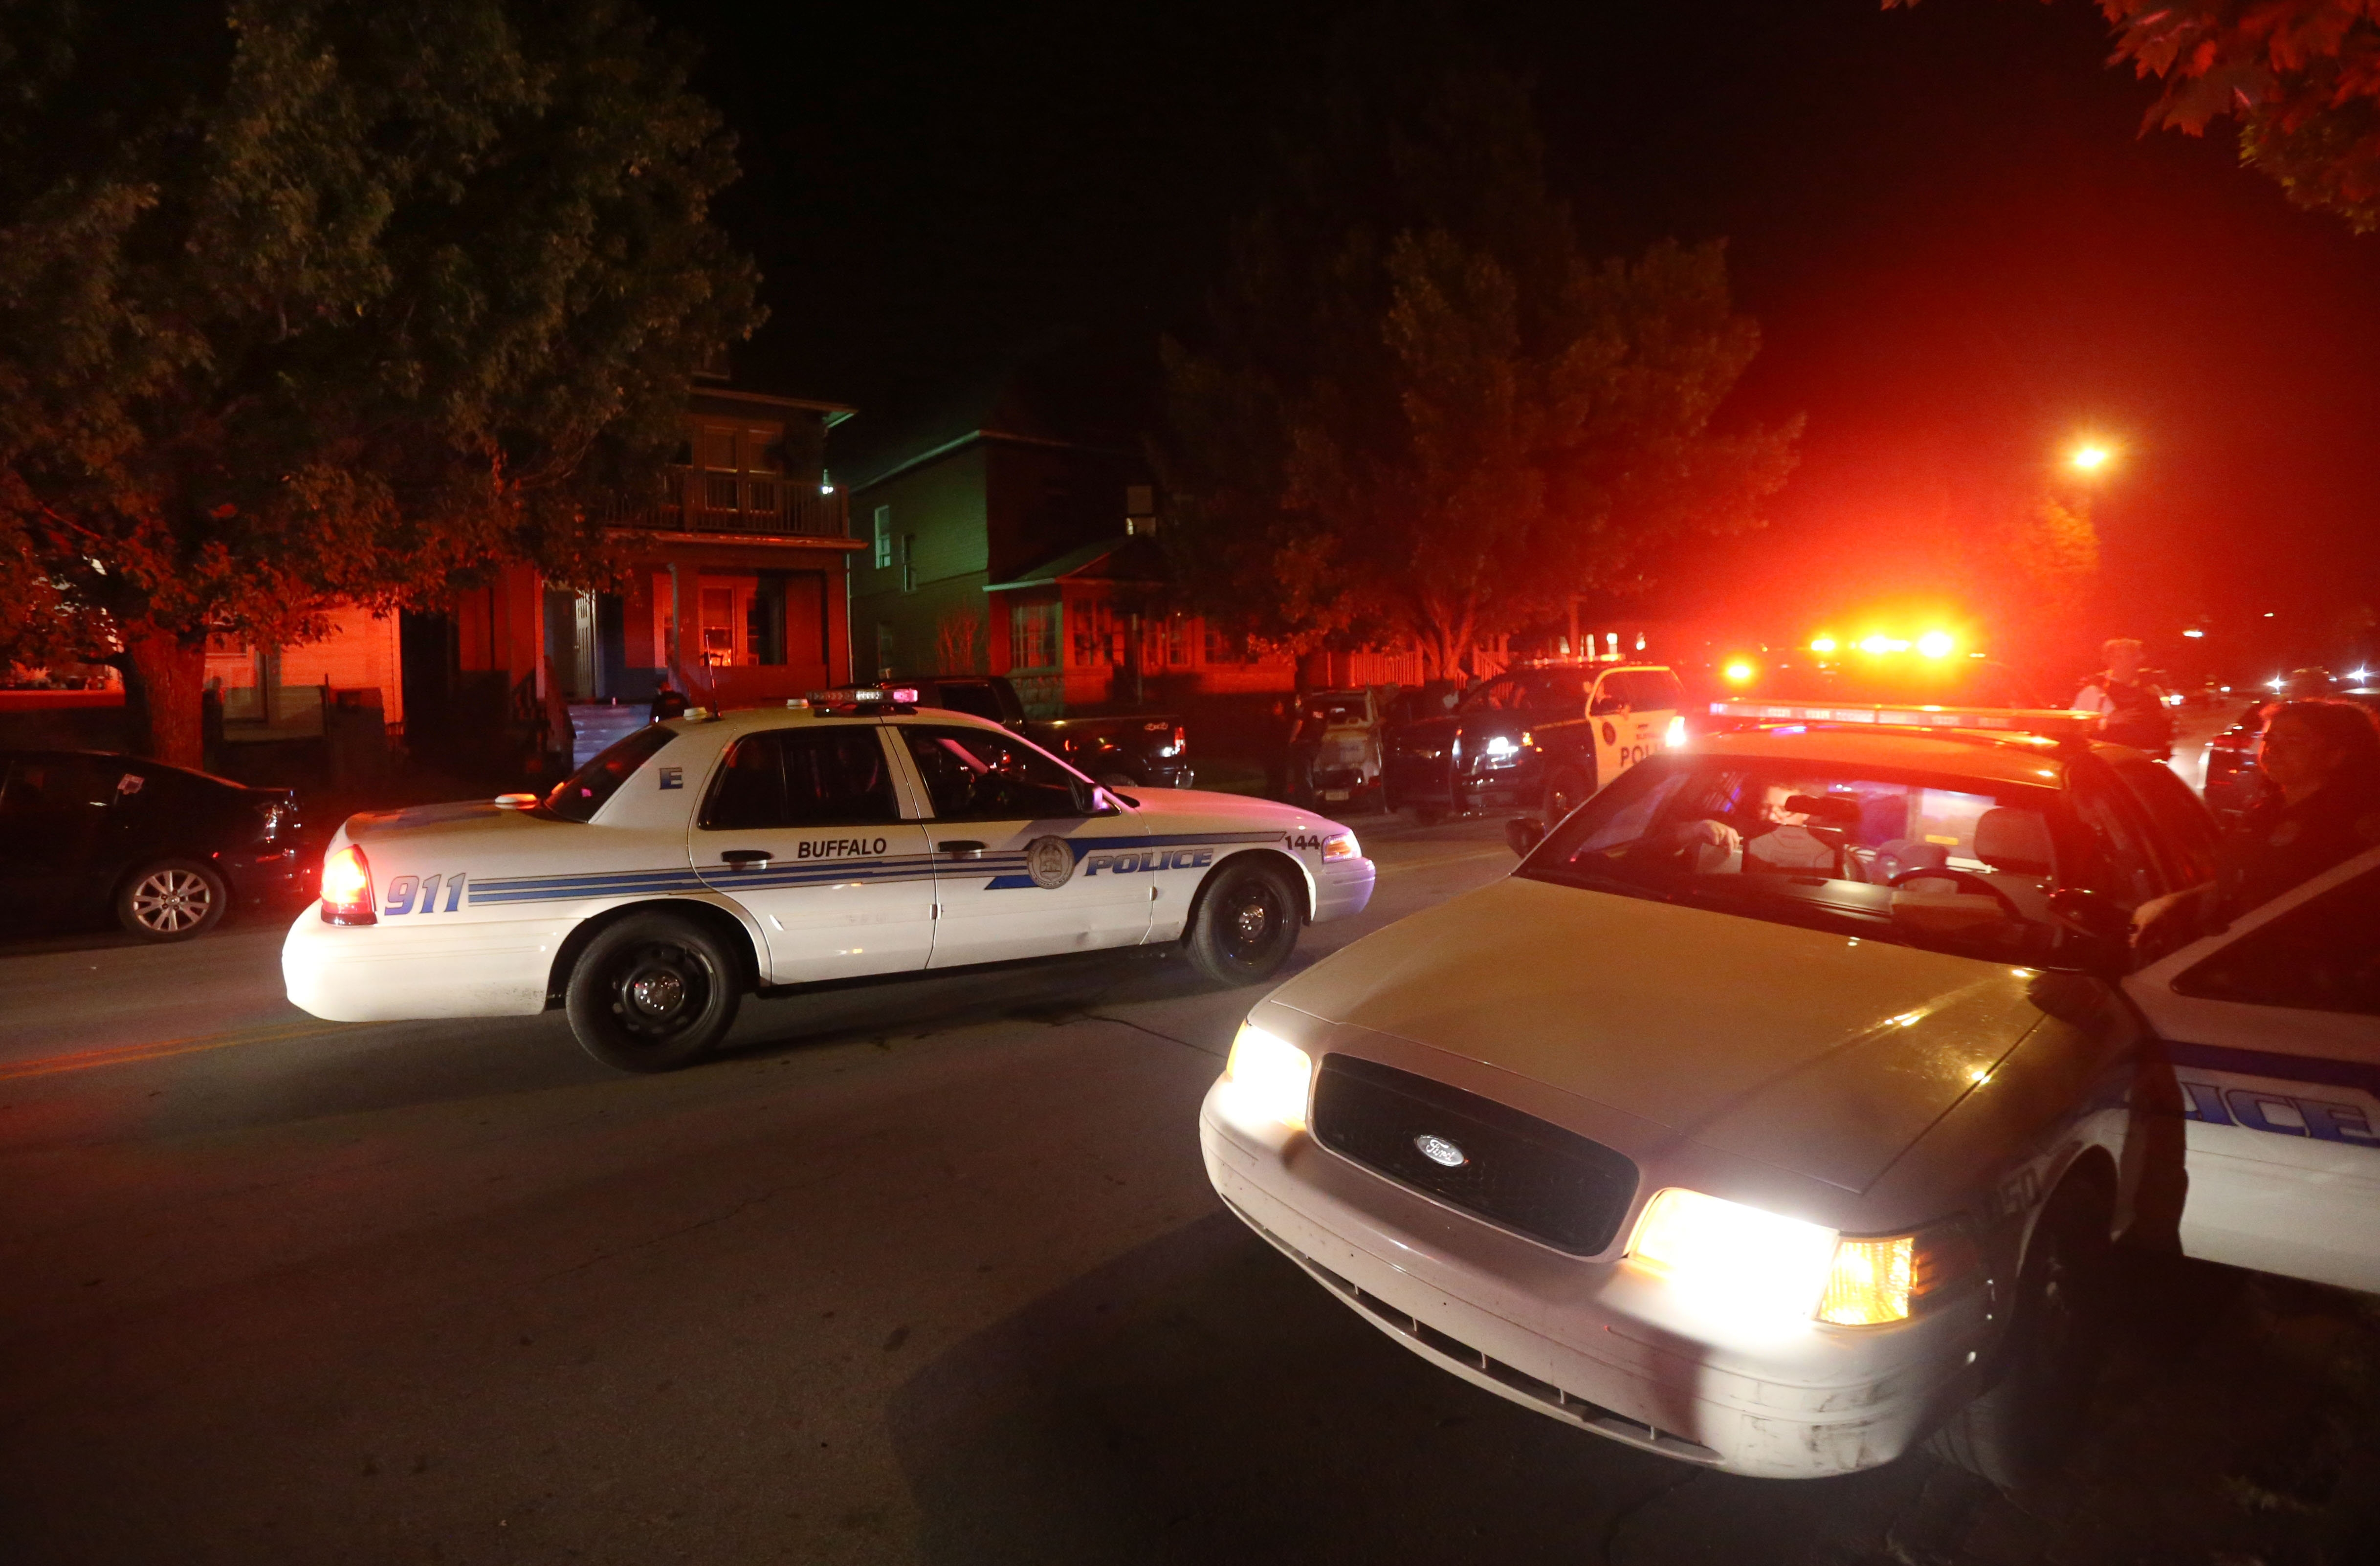 UB students returned in force to the University Heights neighborhood Friday, but police were waiting to head off potential problems. (Sharon Cantillon/Buffalo News)